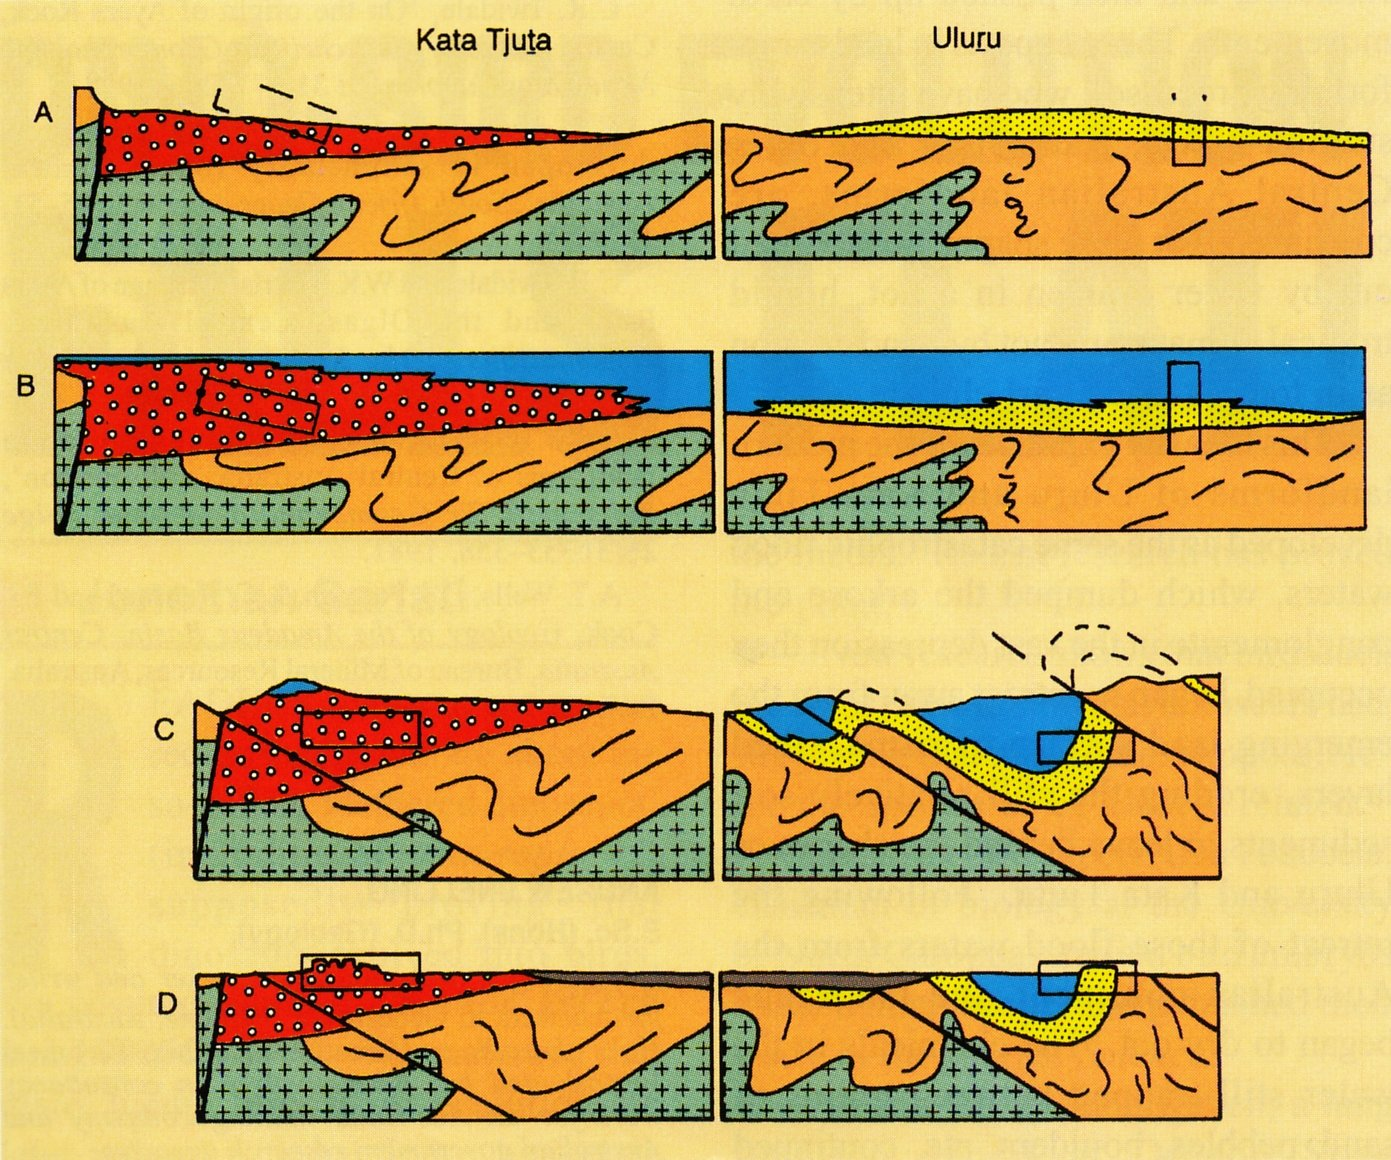 798-cross-sections